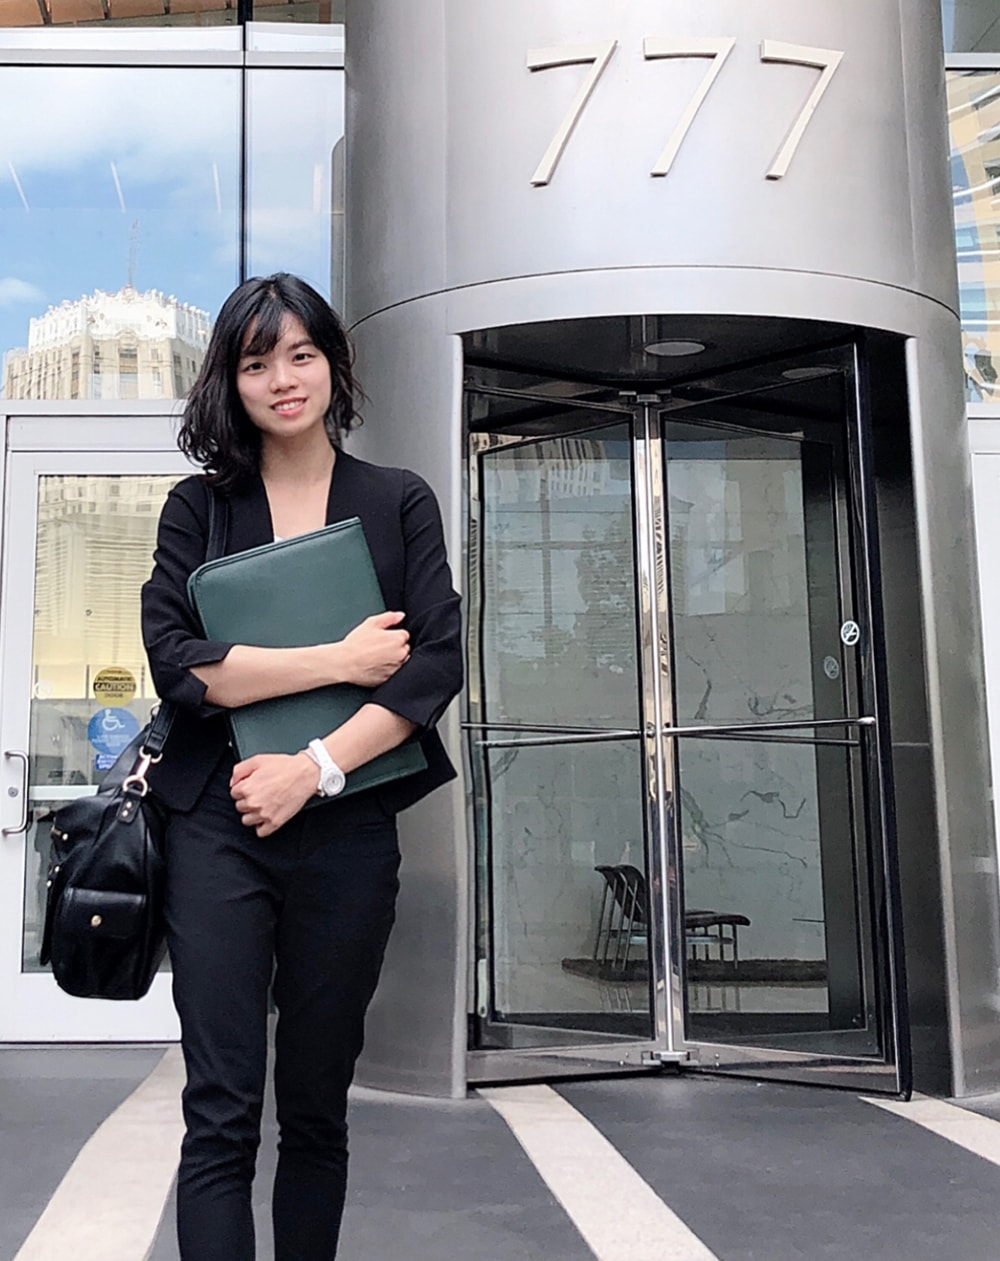 M.S. in Accounting student Daisy Wu pictured in professional attire outside of an office building.